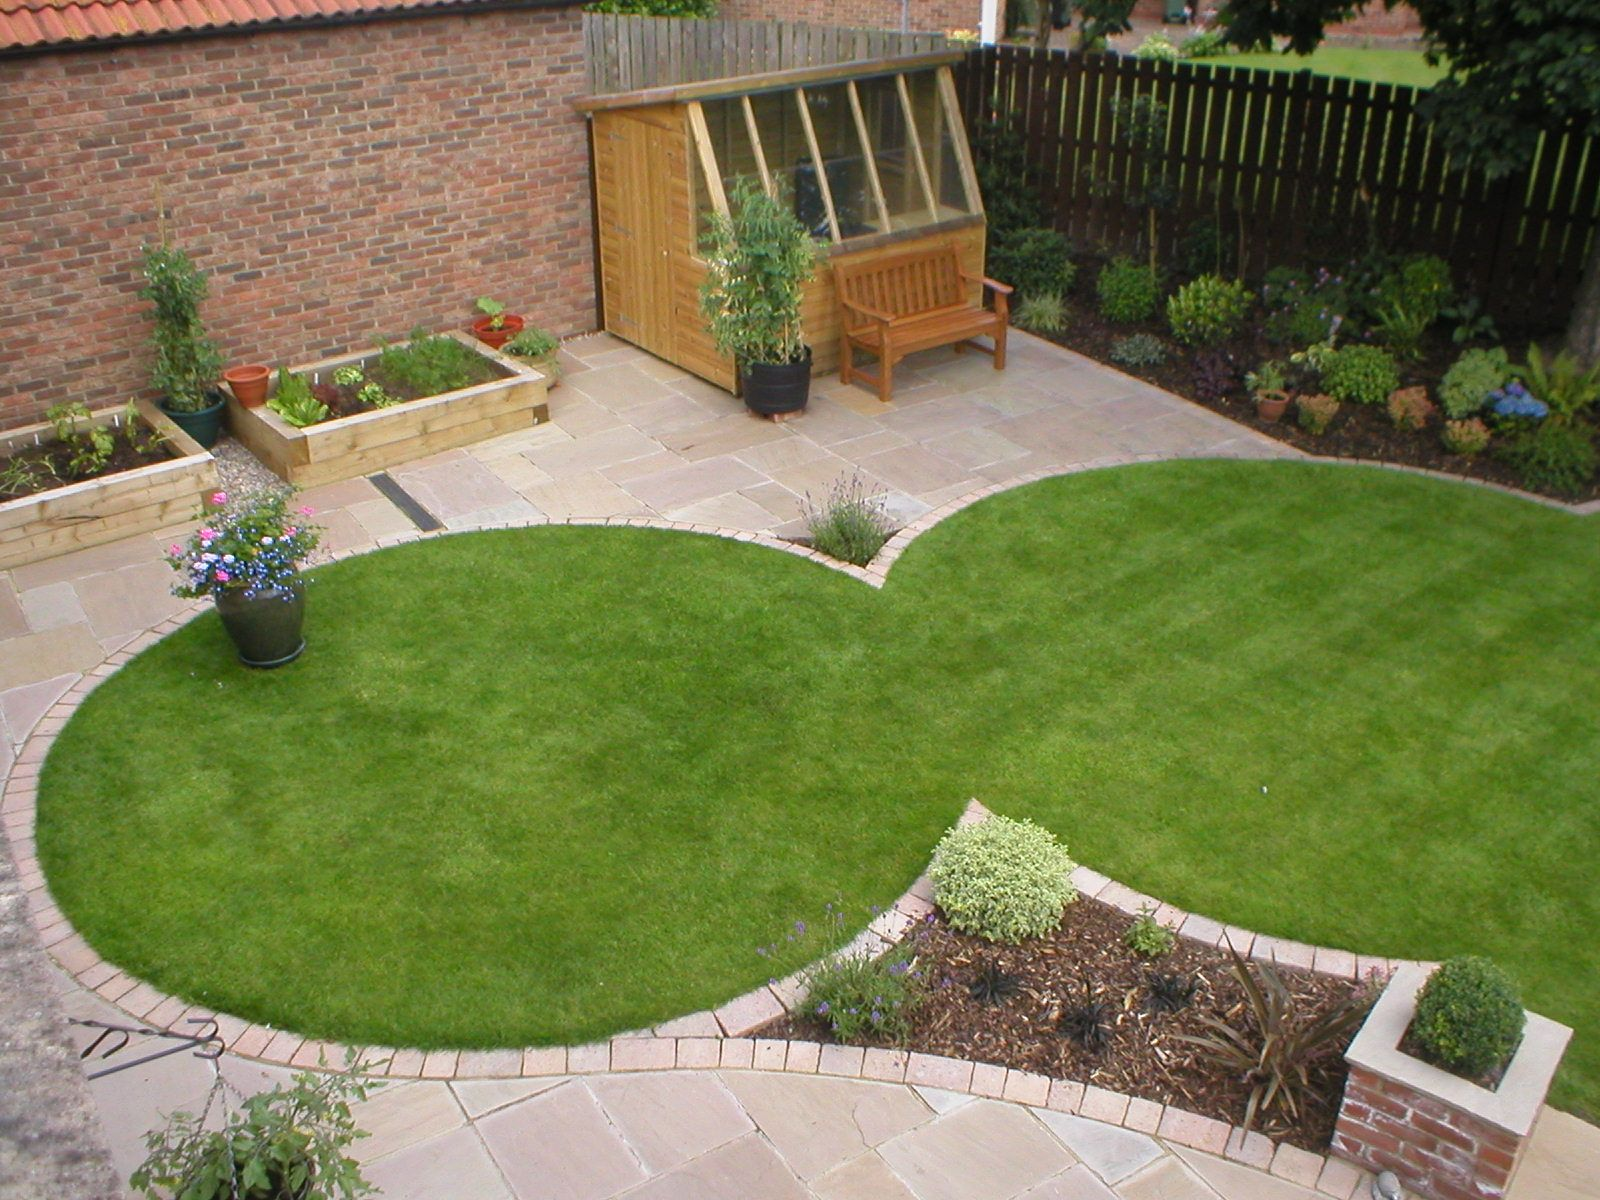 intersected circle lawns surrounded by patio with angled plantg space slanted windo wall shed in far l corner for sunl - Garden Design Circles